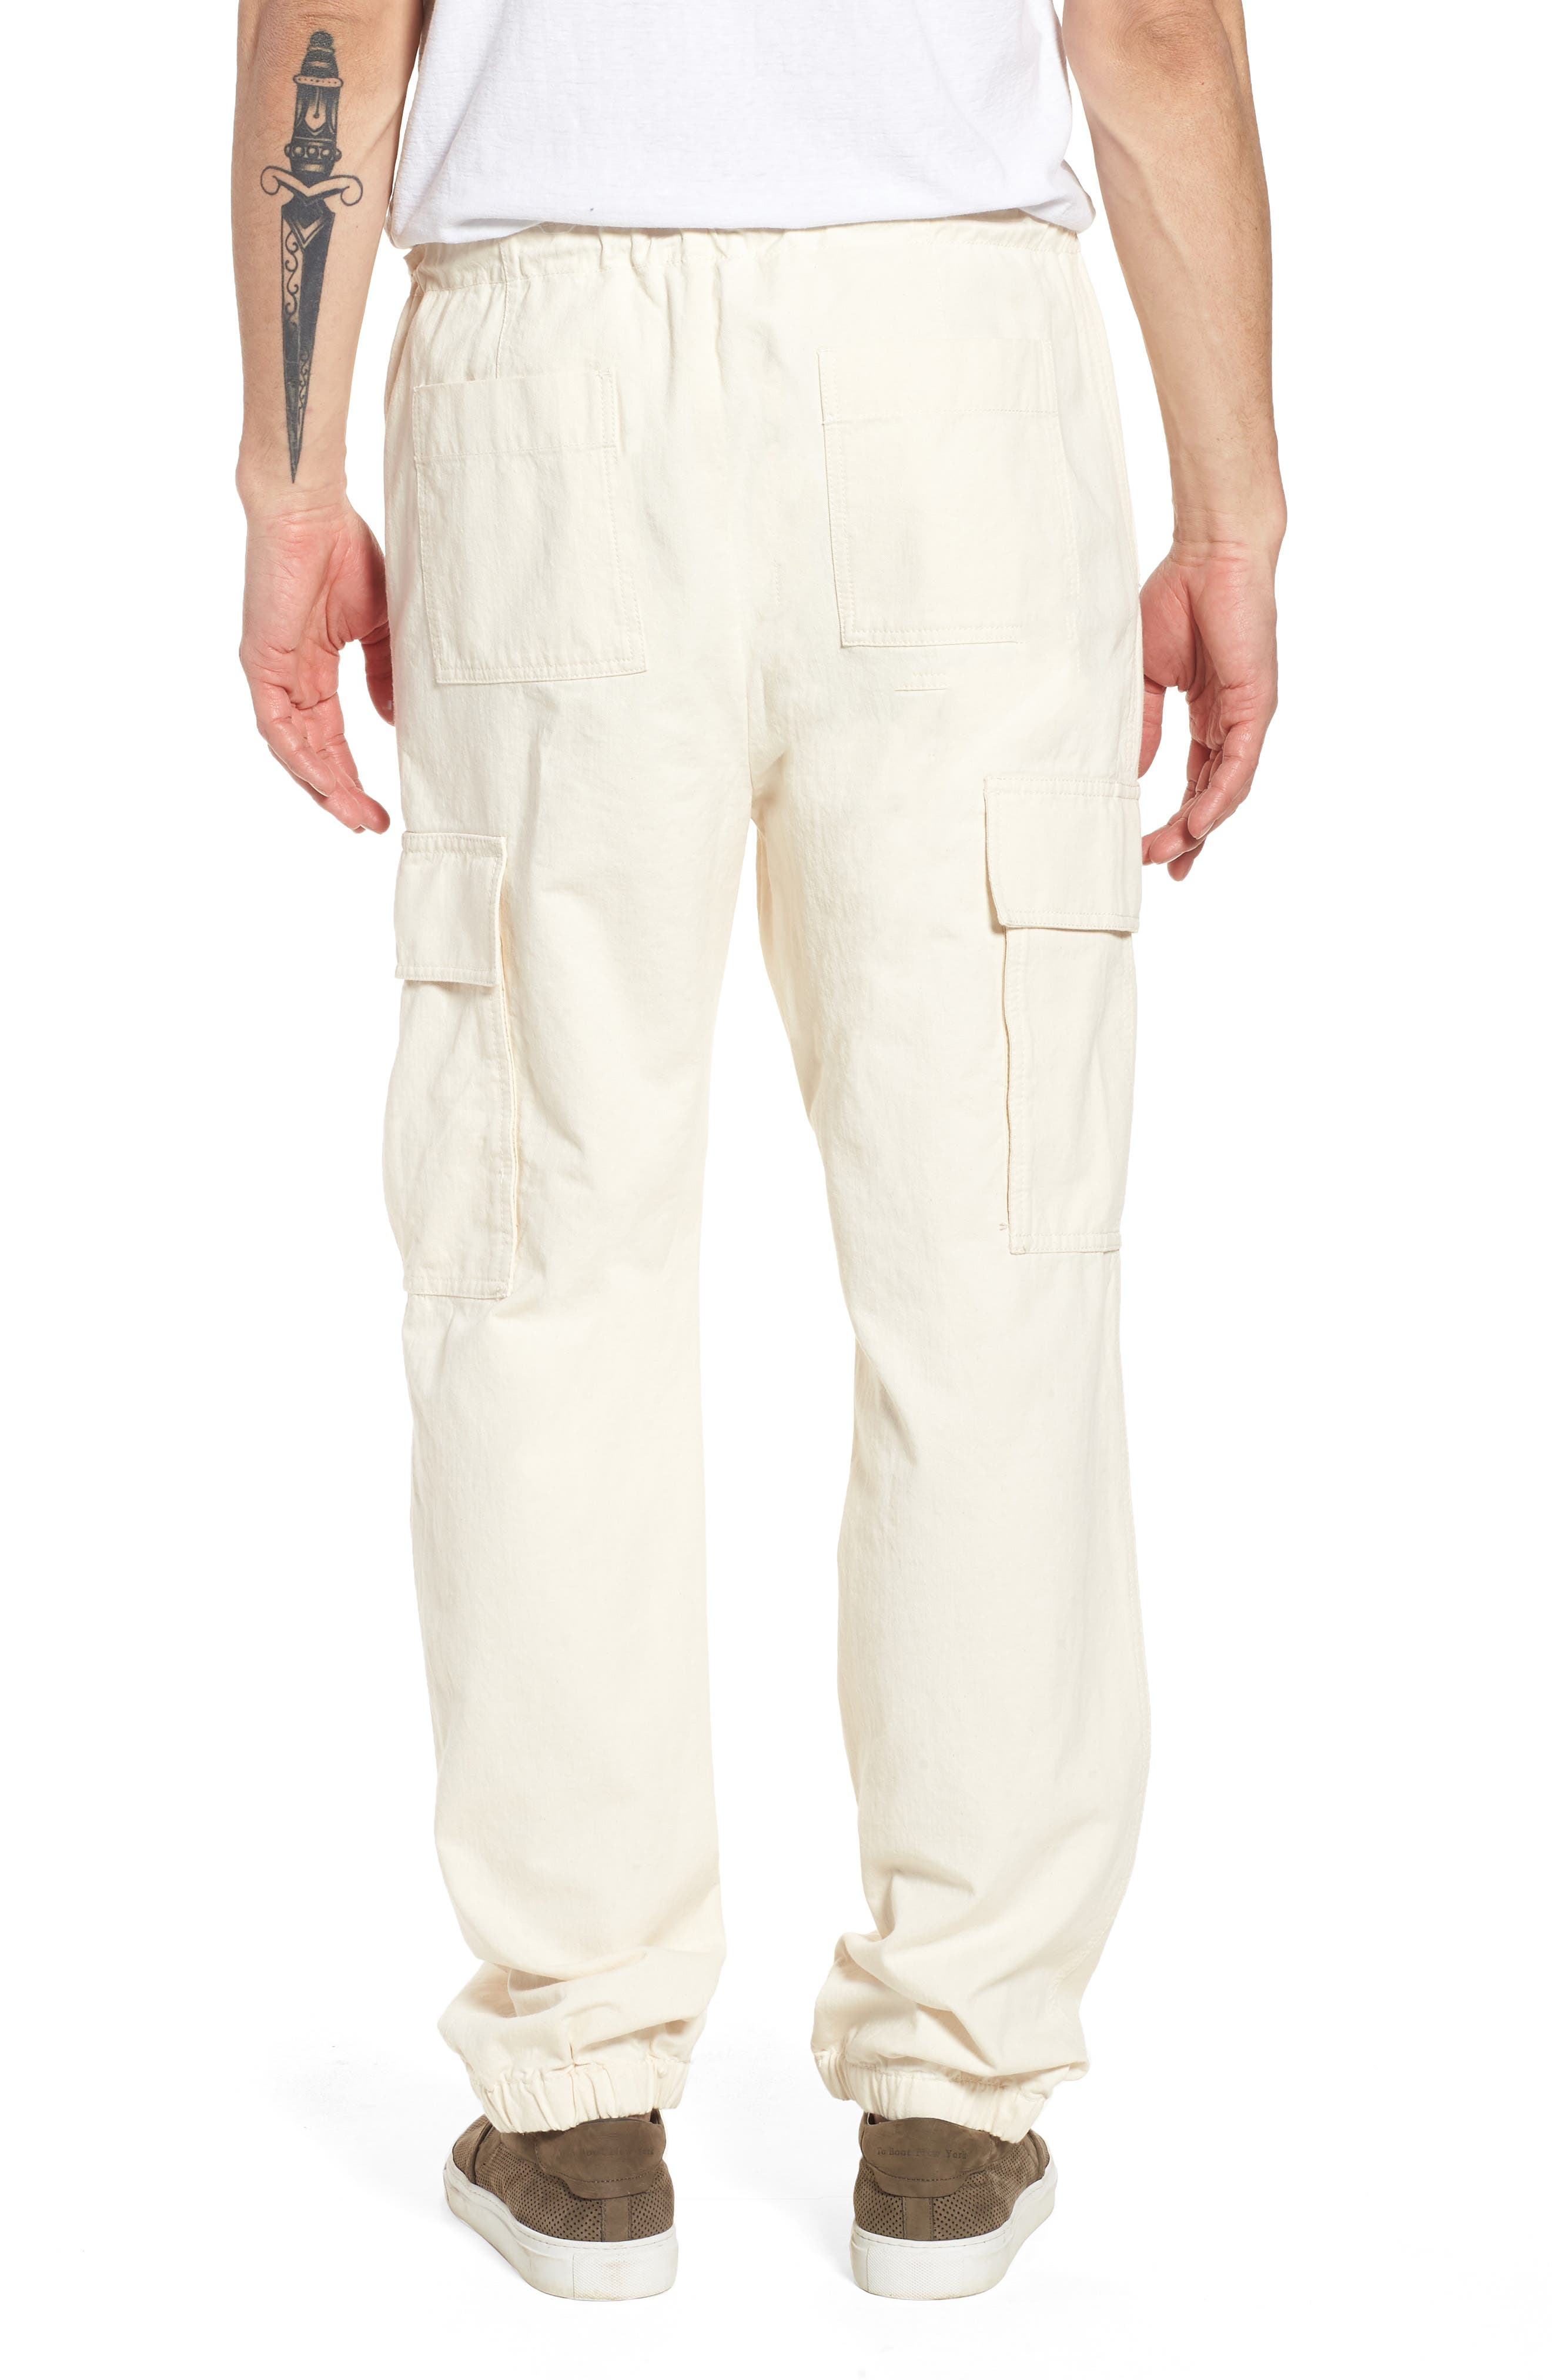 JAMES PERSE,                             Cargo Pants,                             Alternate thumbnail 2, color,                             IVORY